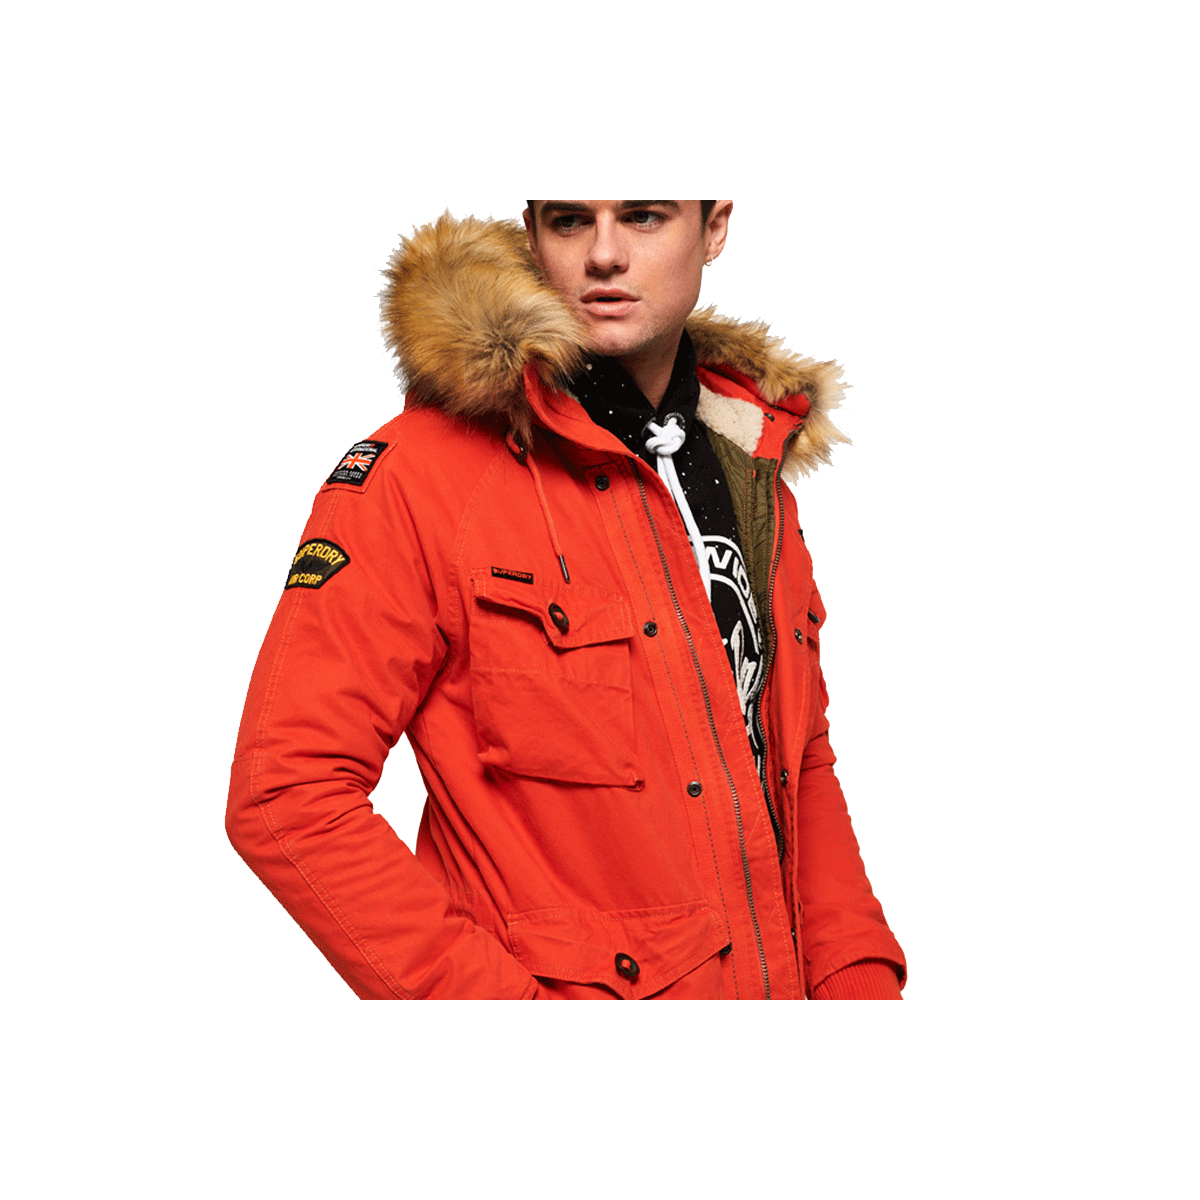 Homme Orange Manteau M50003 Superdry Xiaqwkzv Qpp6wnpa Heavy Weather wUAqAPzI